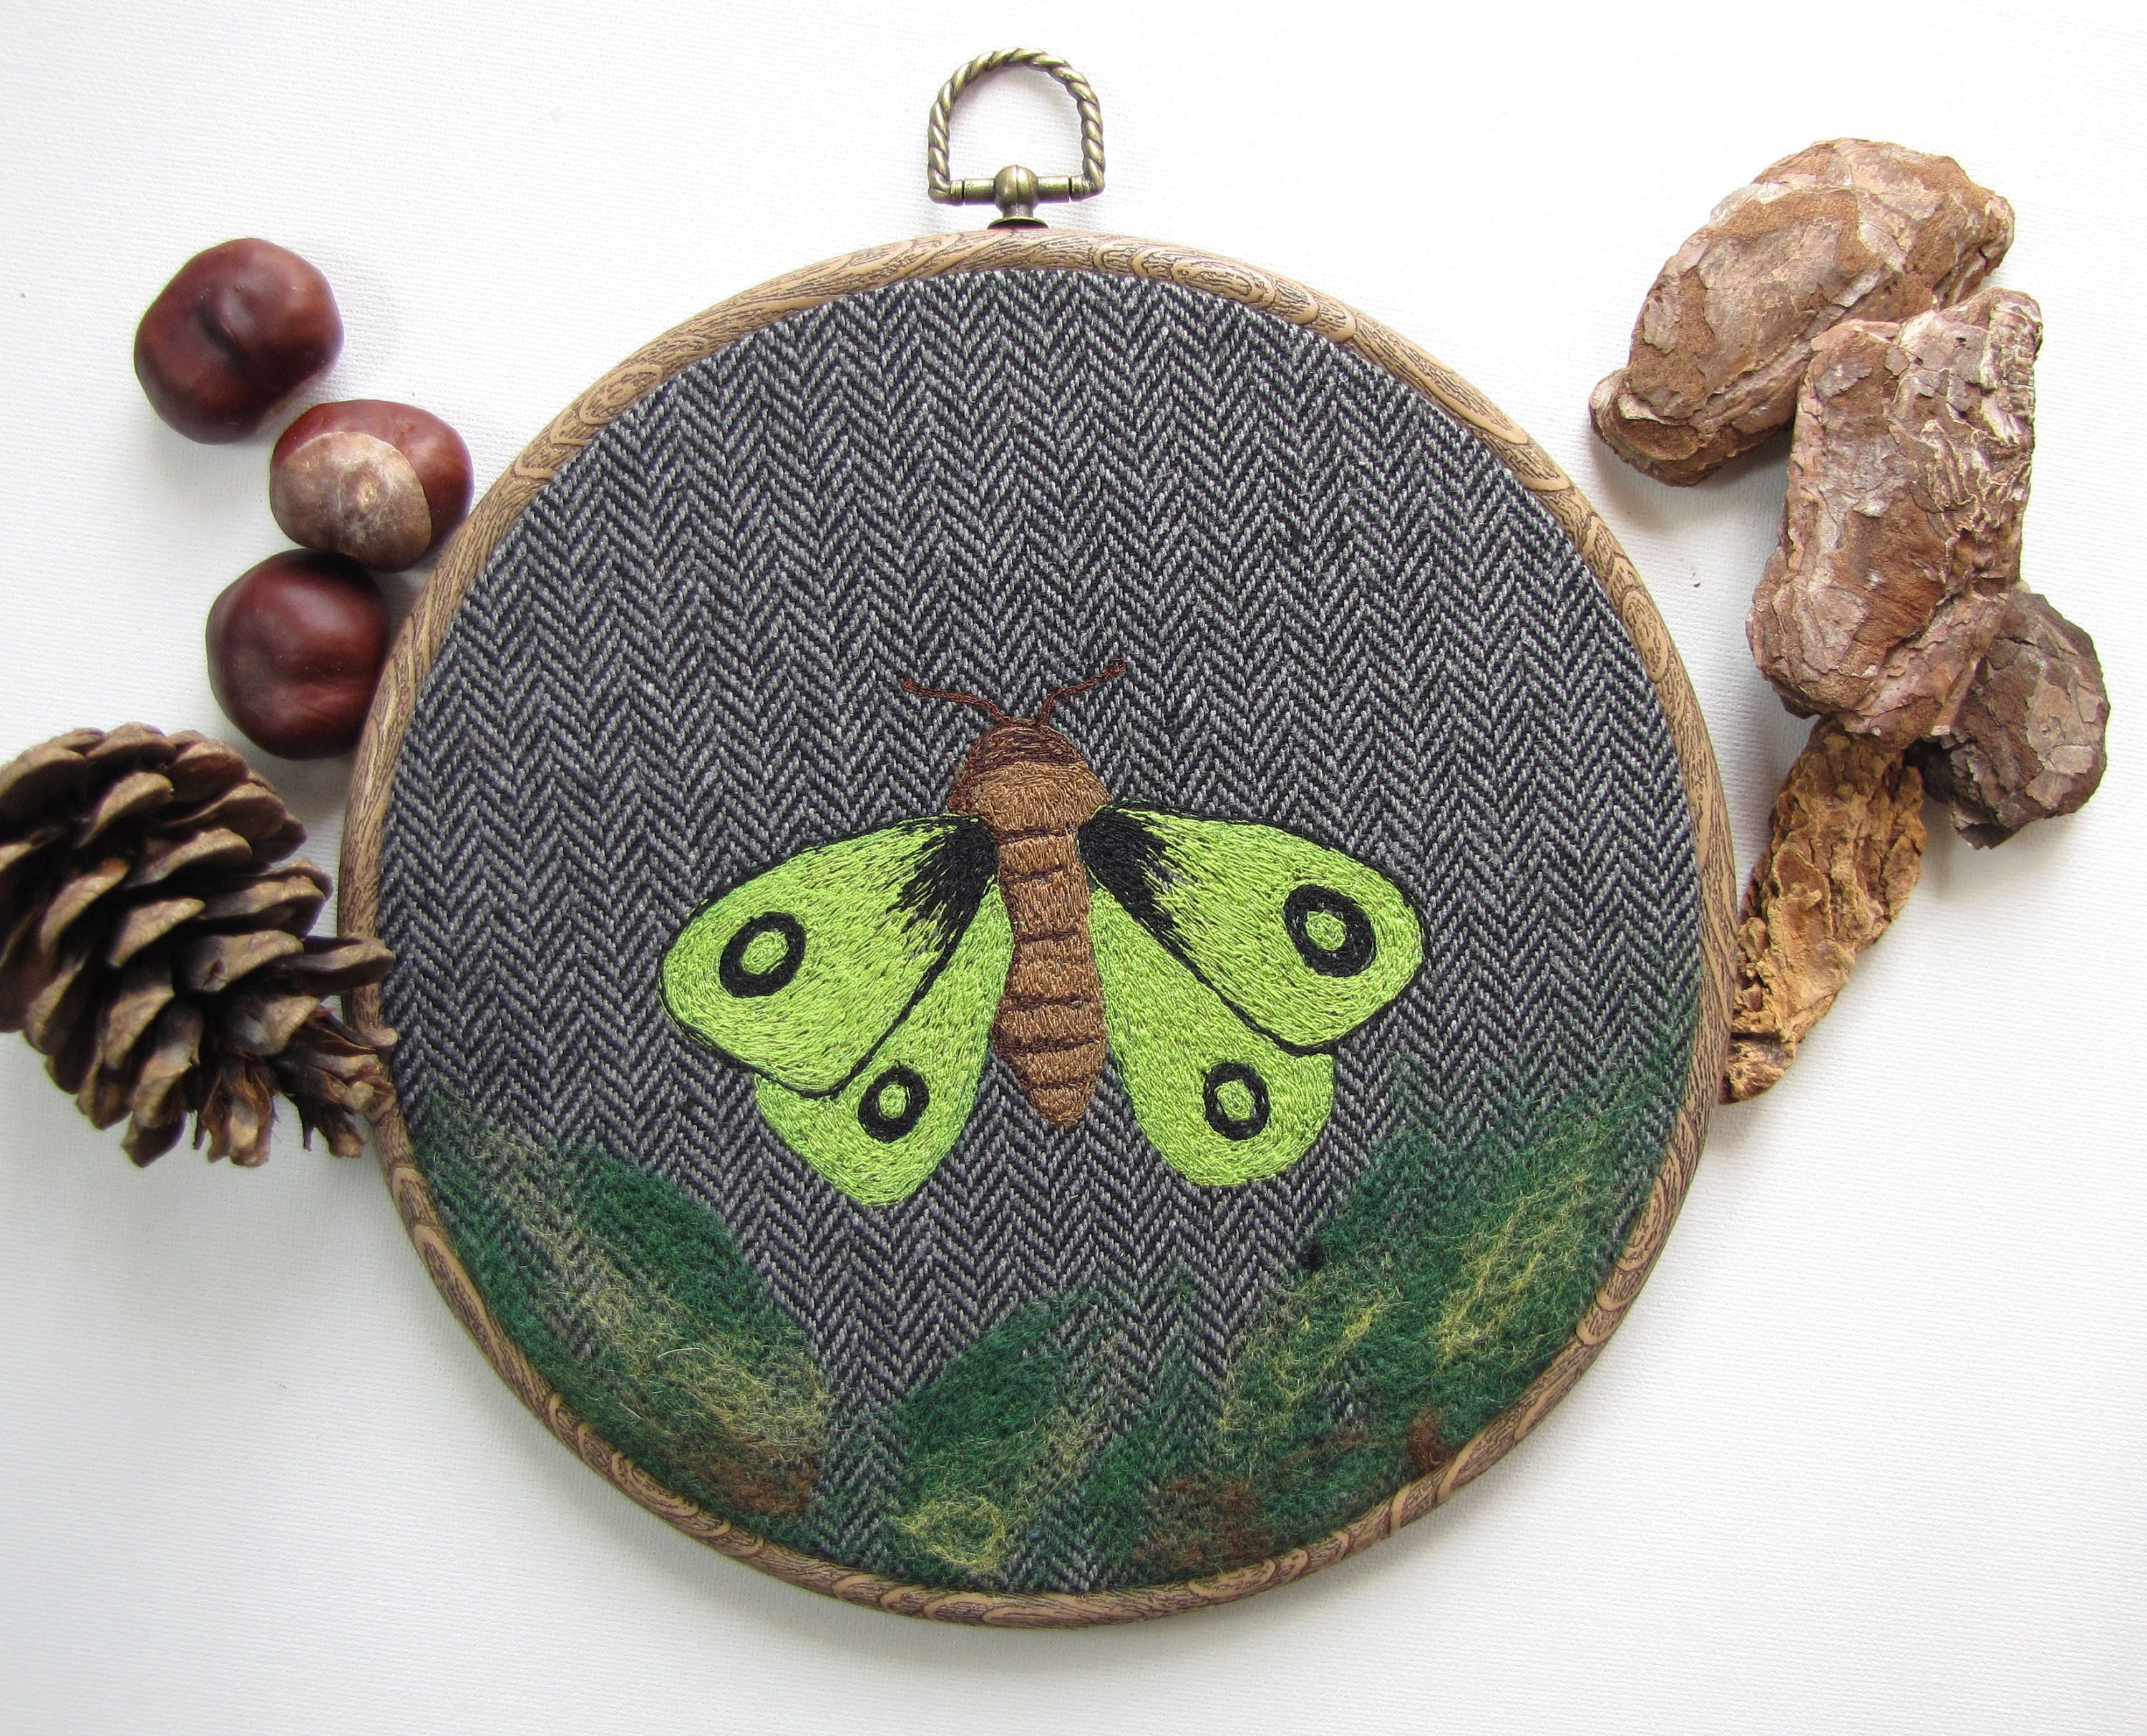 Moth embroidery, rustic home decor, boho style, nature textile art, embroidery hoop, moth art, fibre arts, housewarming gift by ApisStudios on Etsy